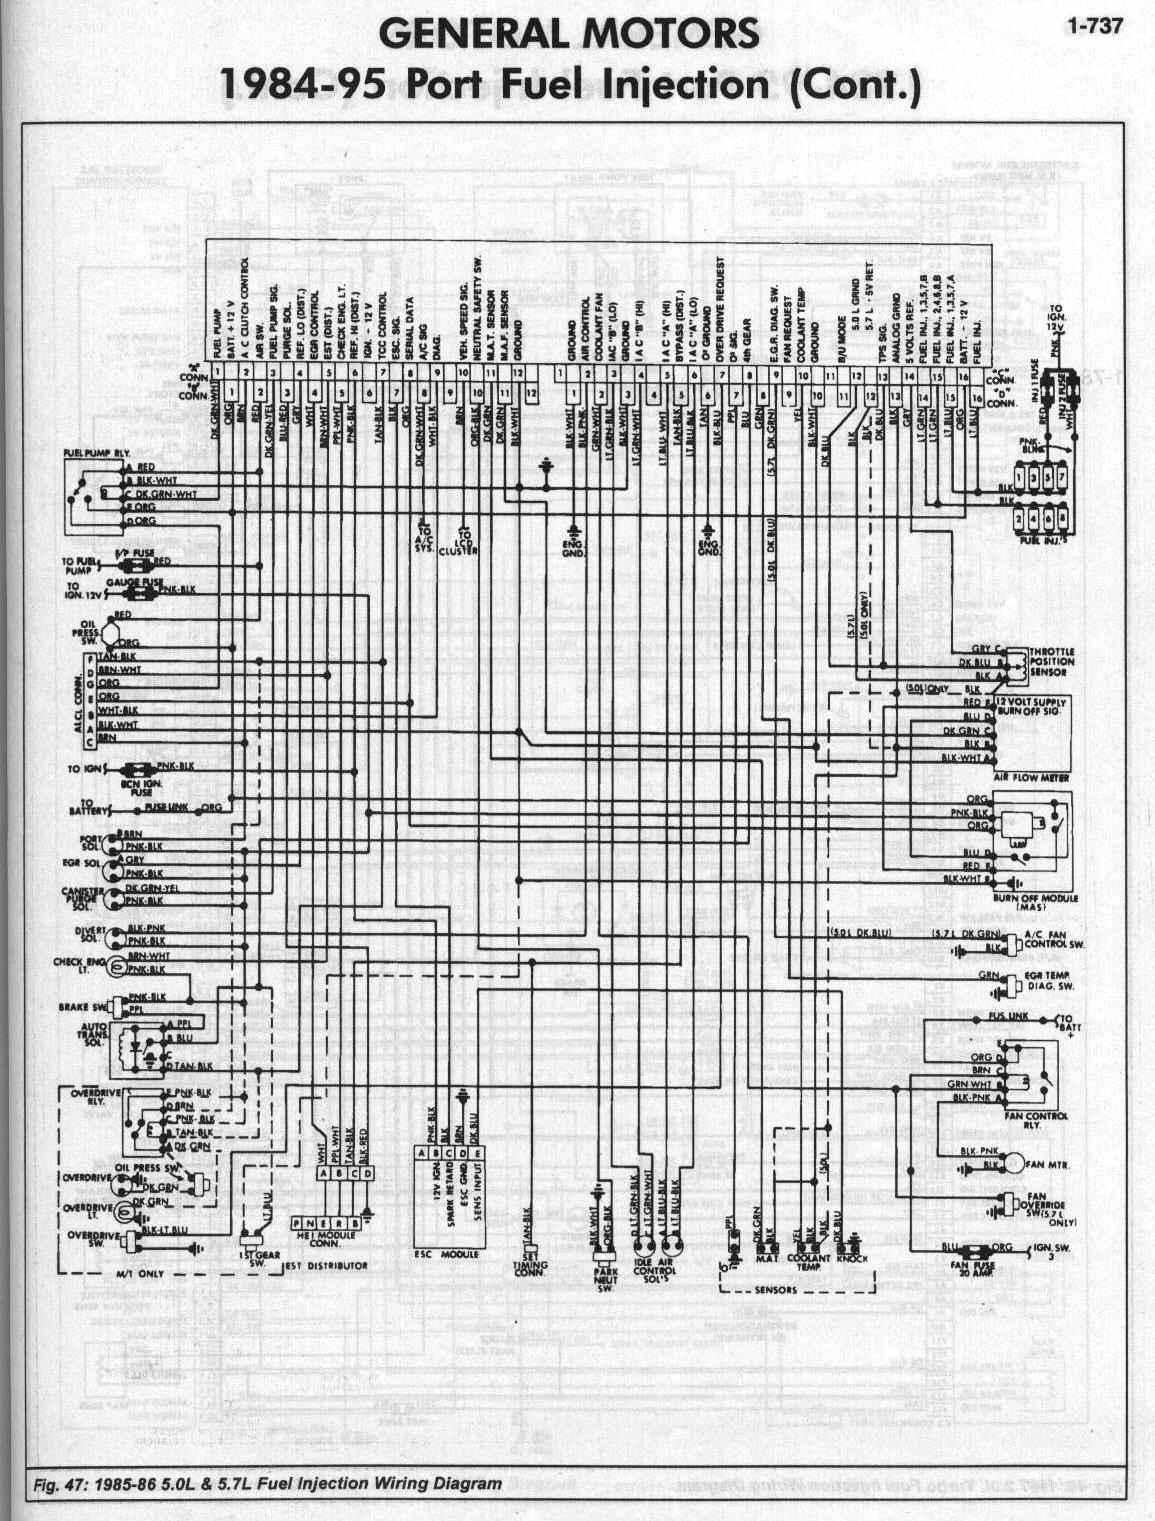 gm maf wiring wiring library Fuse Box Diagram 85 ecm wiring (maf mas) diagram copy1 copy2 86